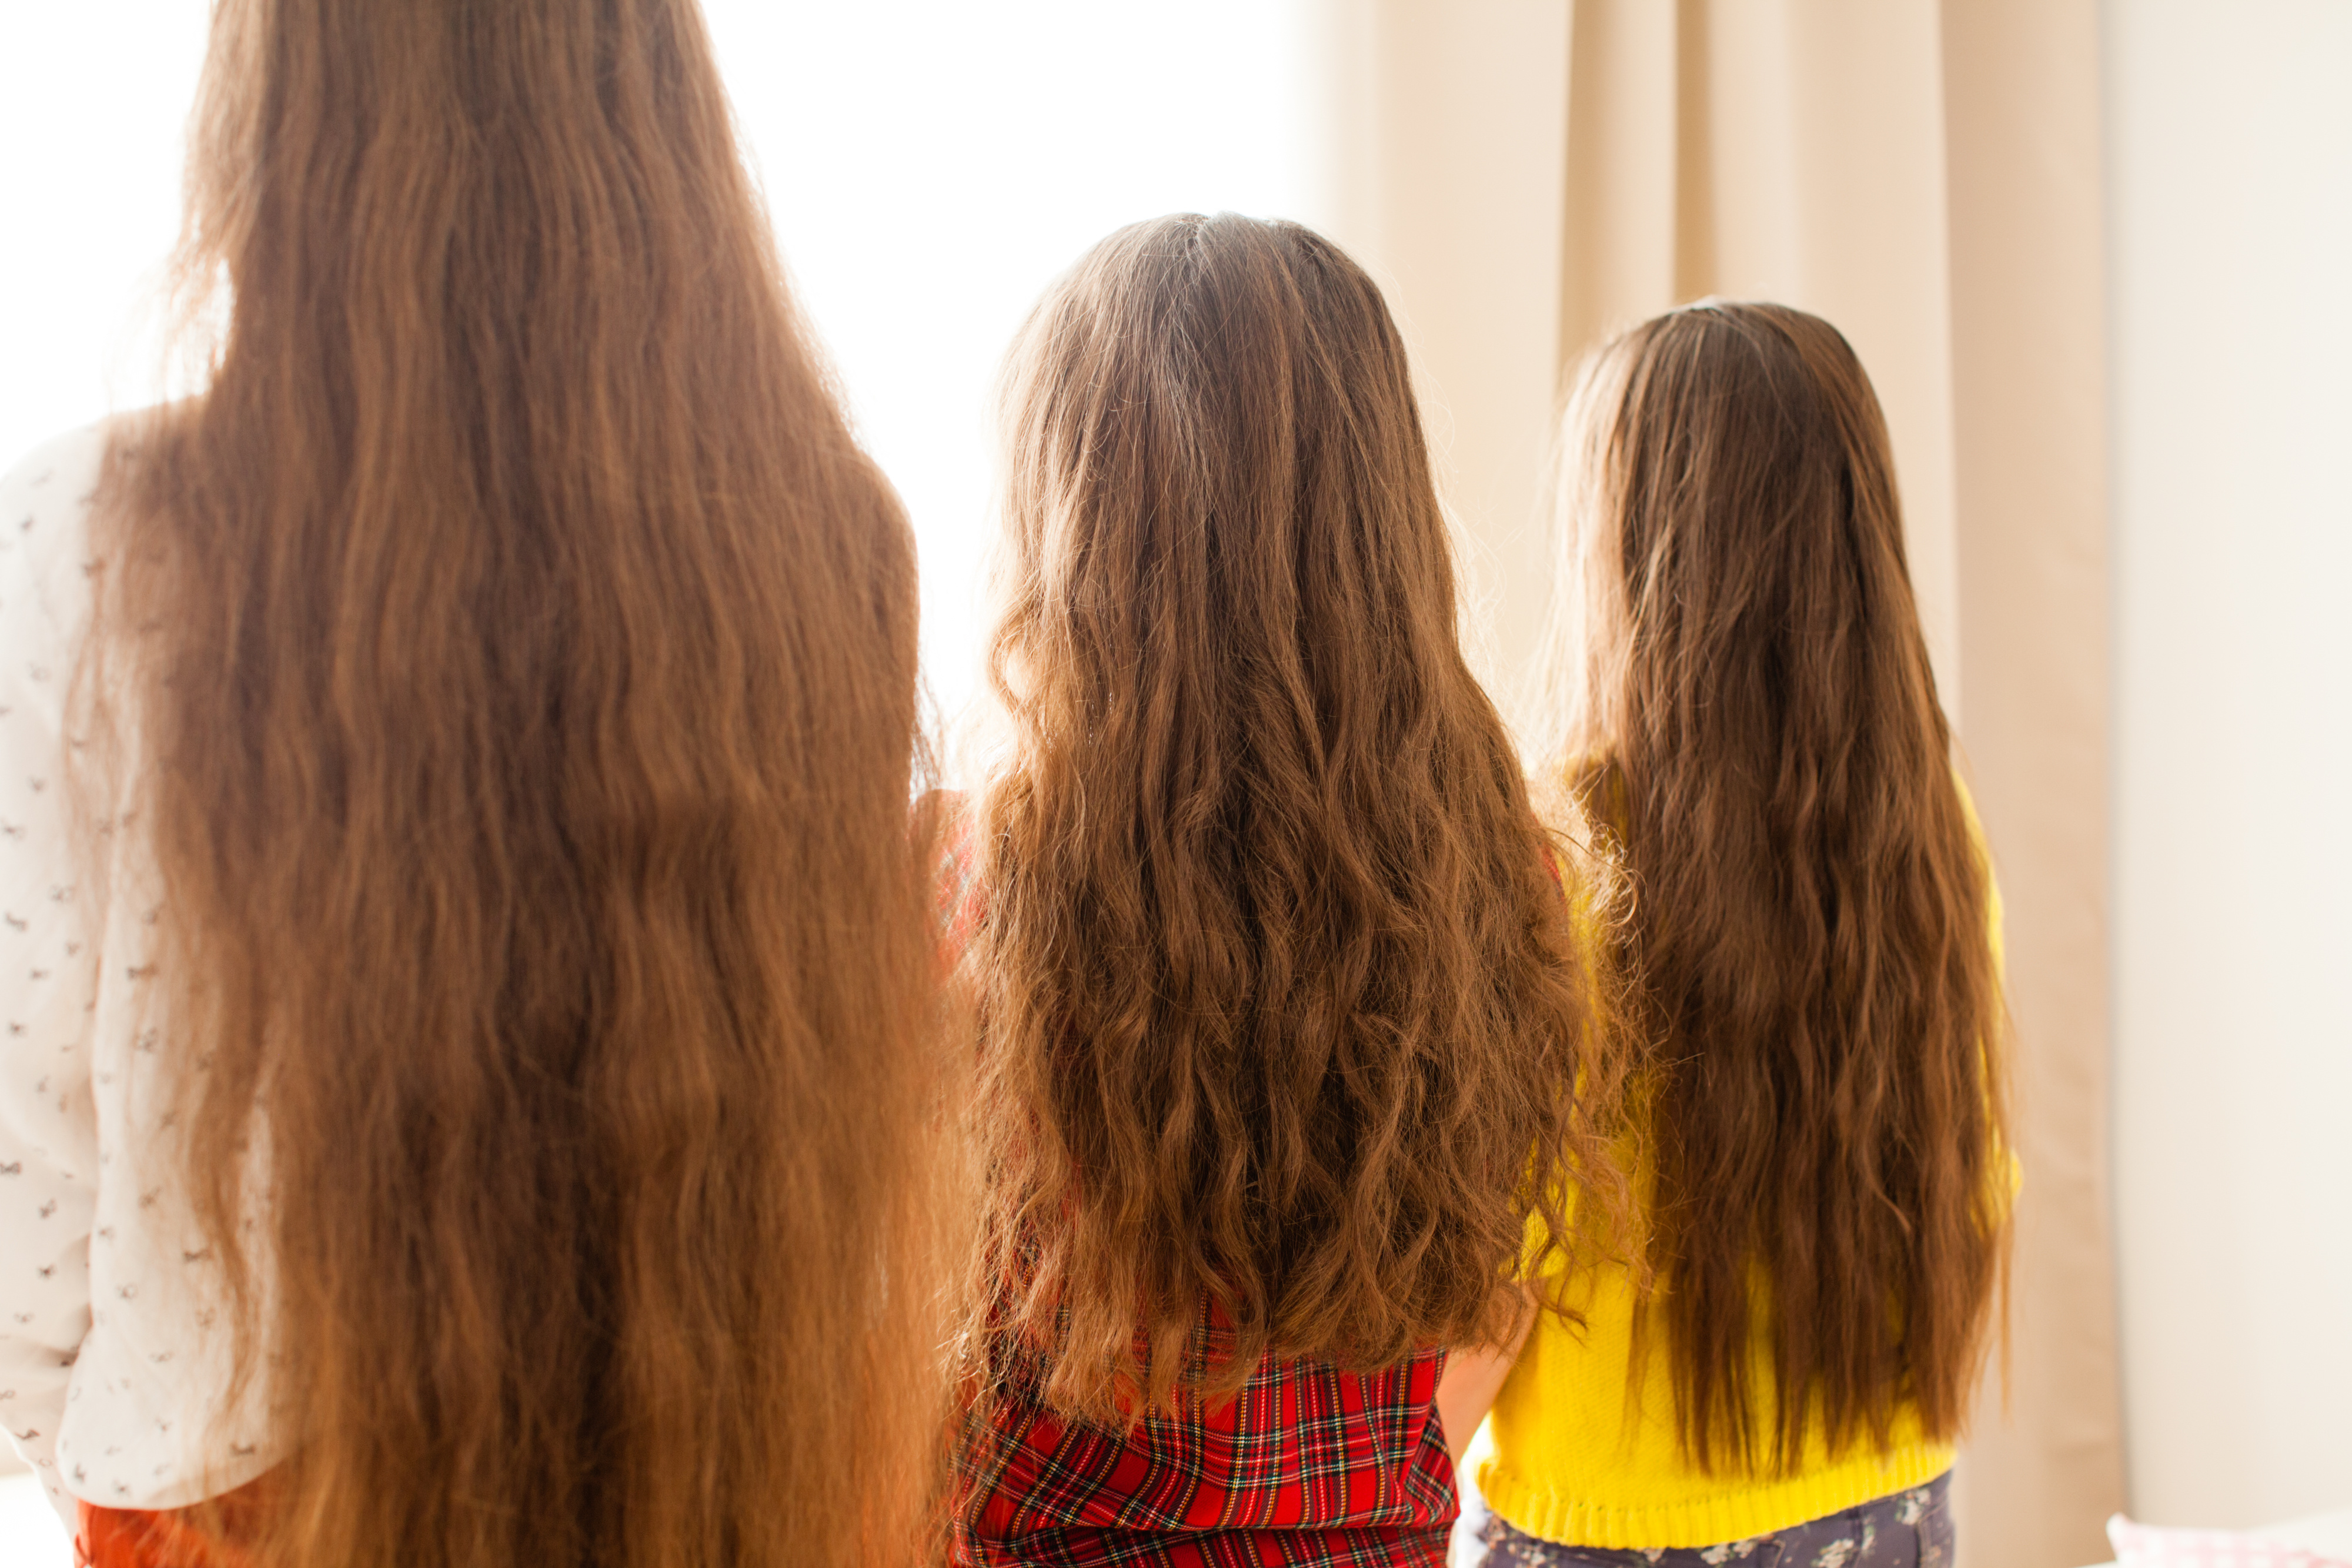 The Best Hair Color to Make Your Hair Look Fuller - Hair ...